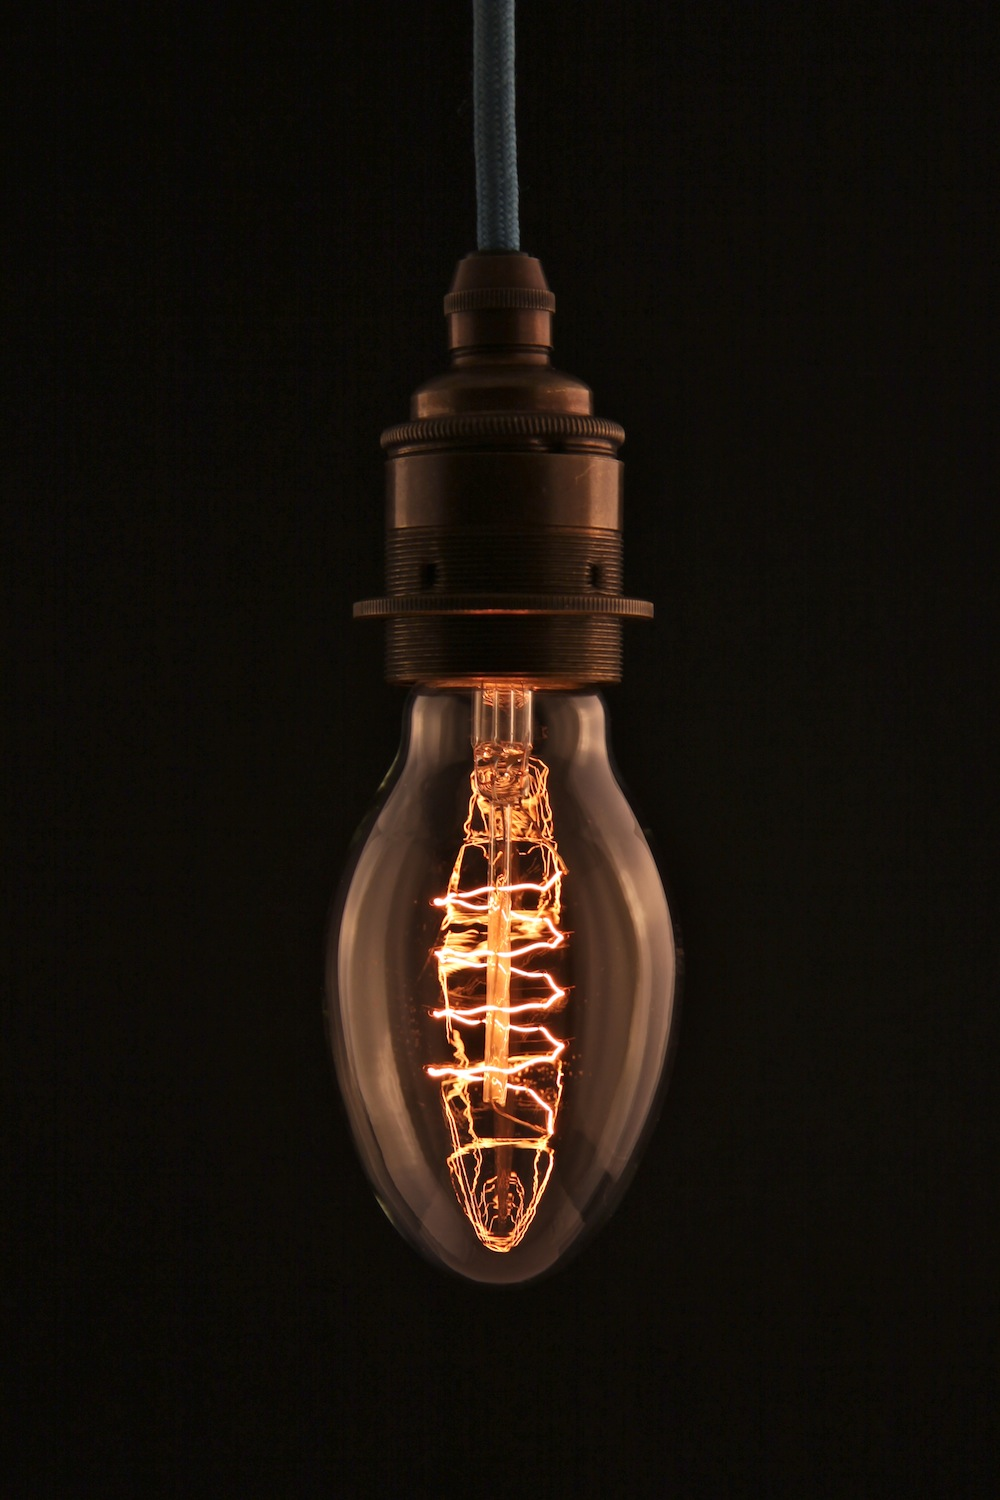 thomas edison with a light bulb k edison bulb pod style. Black Bedroom Furniture Sets. Home Design Ideas